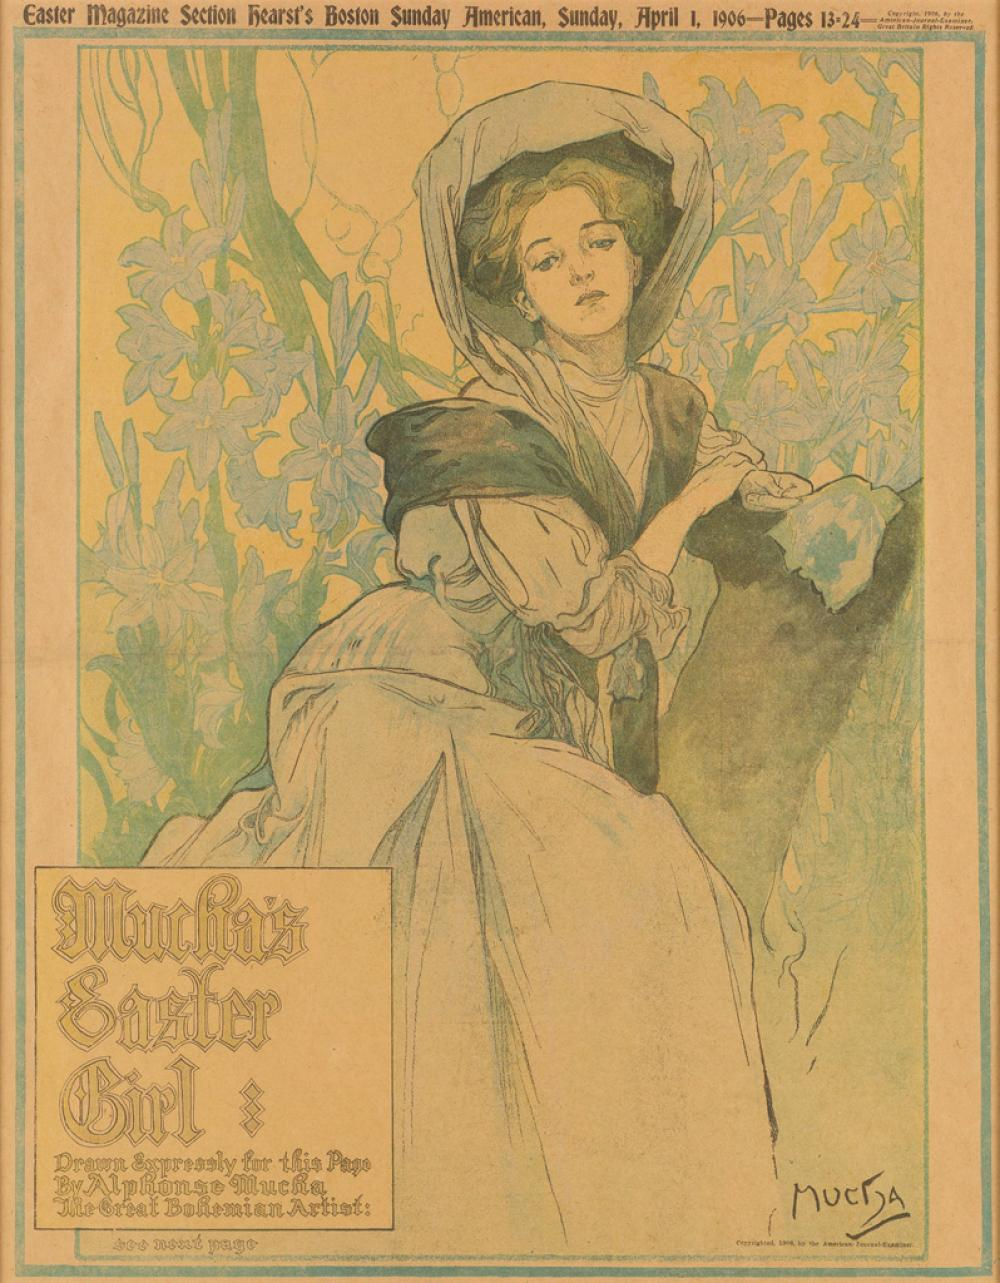 ALPHONSE MUCHA (1860-1939). MUCHA''S EASTER GIRL / HEARST BOSTON SUNDAY AMERICAN. April 1, 1906. 19x15 inches, 49x38 cm.